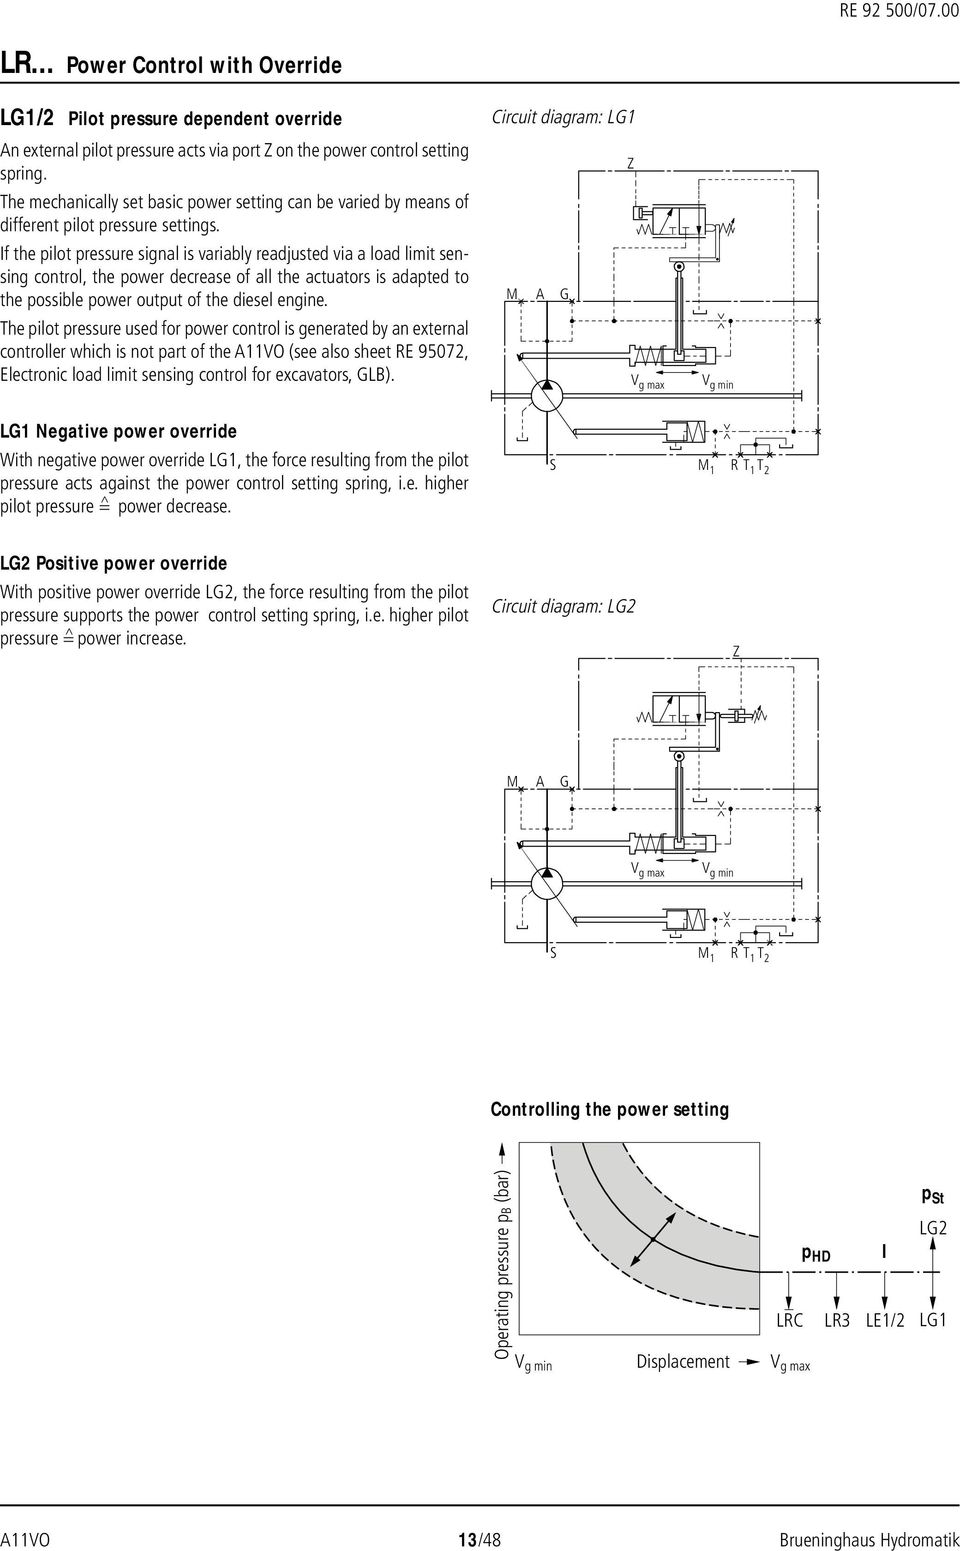 Brueninghaus Hydromatik Variable Displacement Pump A11vo Re For Electronic Load Circuit Diagram If The Pilot Pressure Signal Is Variably Readjusted Via A Limit Sensing Control